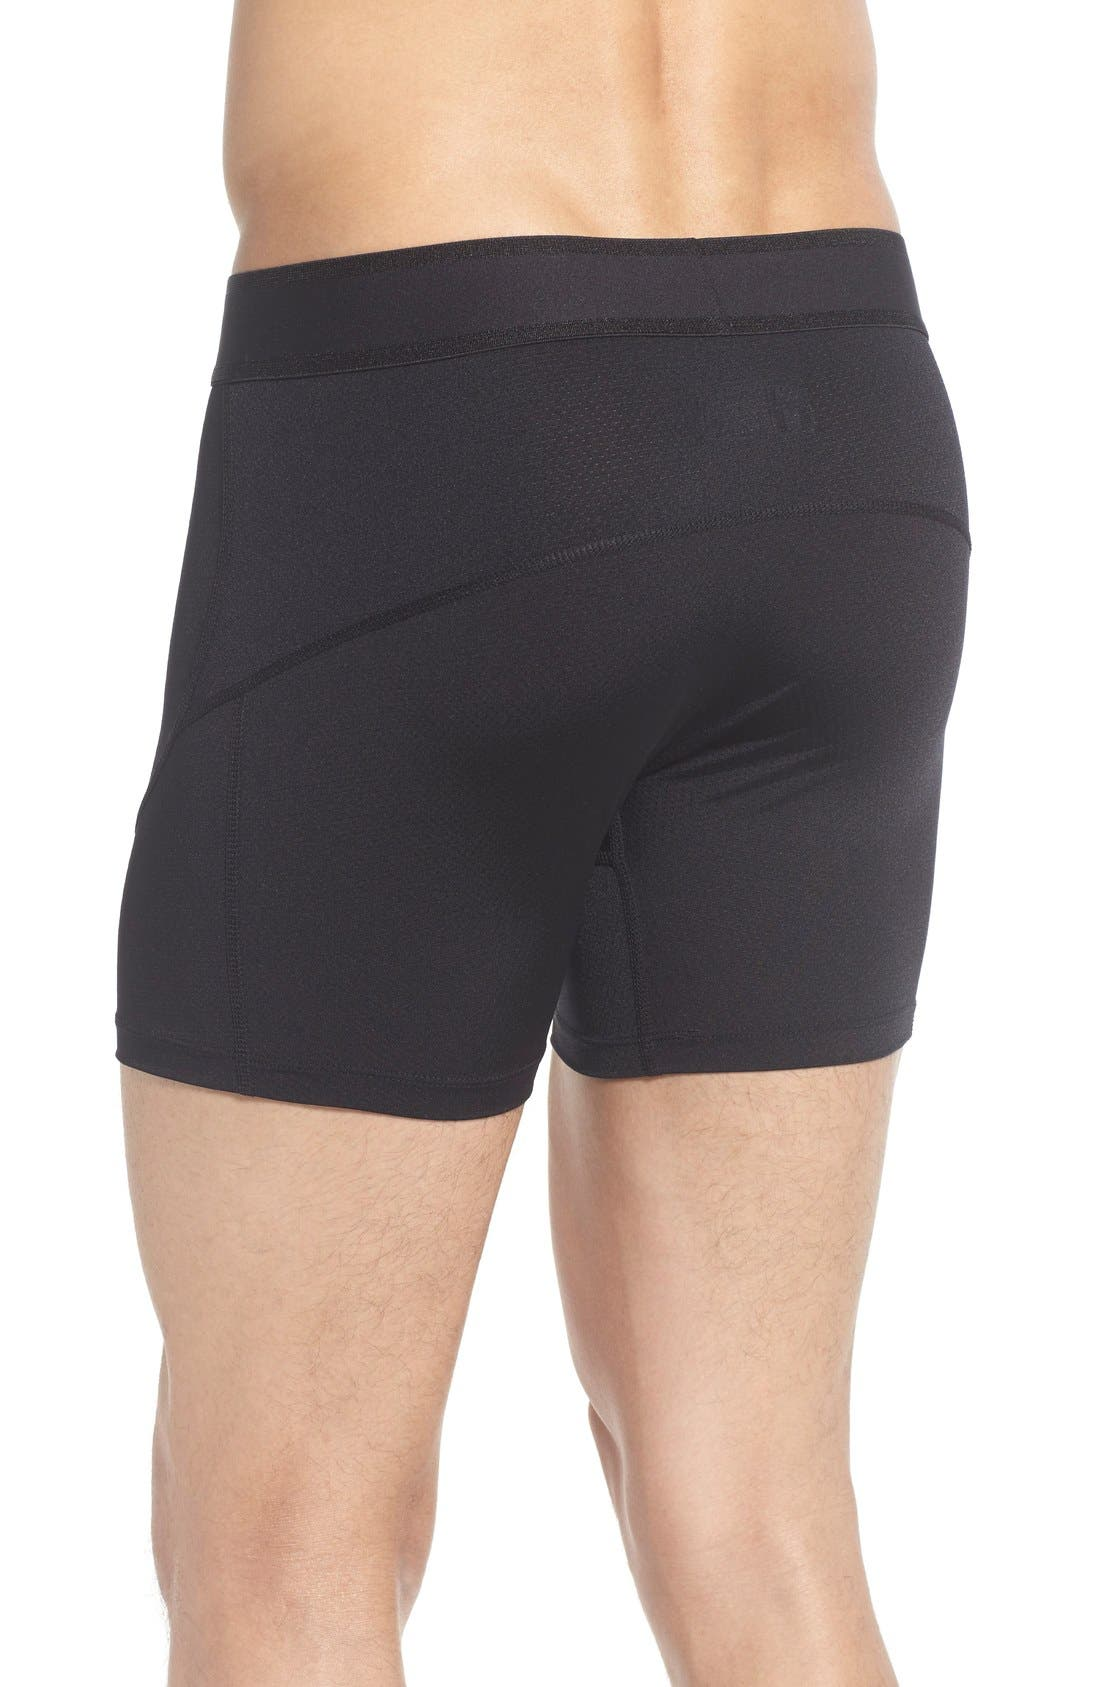 Kinetic Stretch Boxer Briefs,                             Alternate thumbnail 2, color,                             001